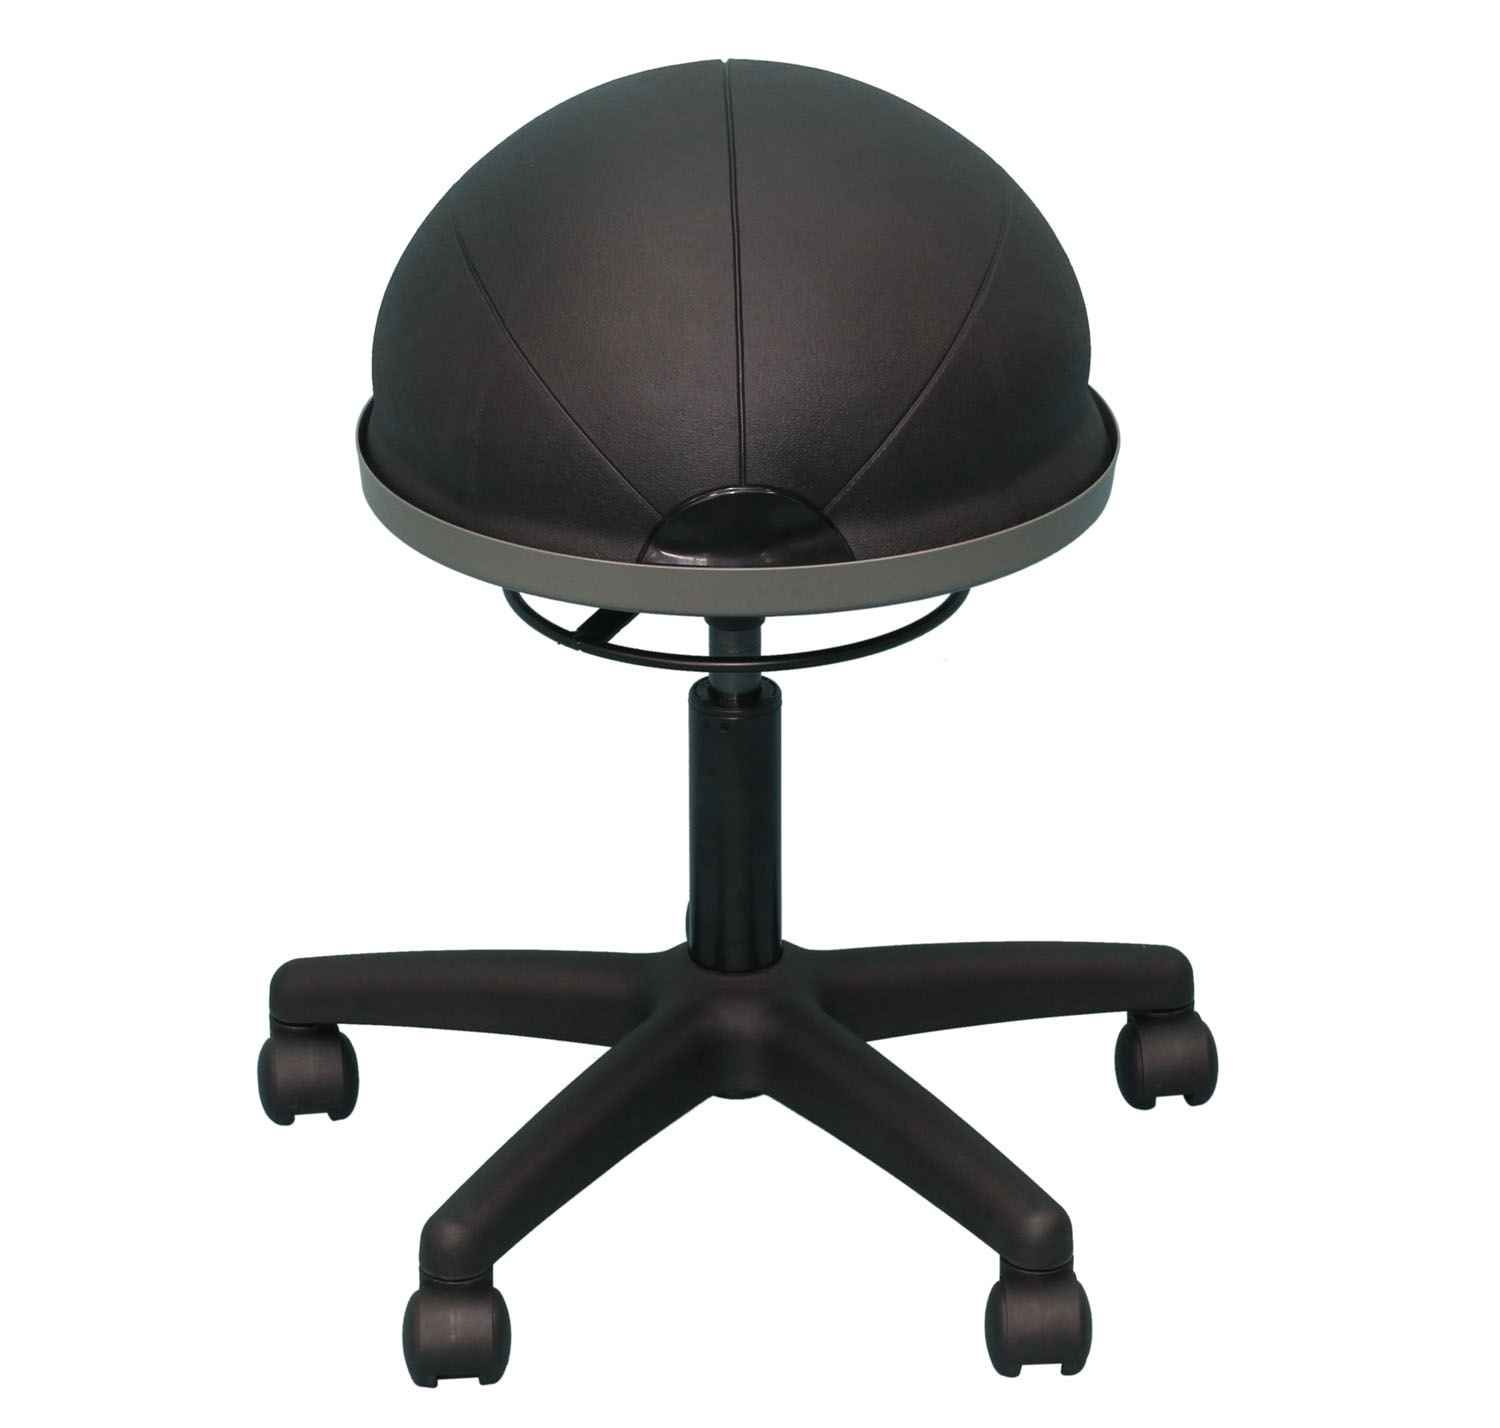 fice ergonomic swivel ball chair studio finds